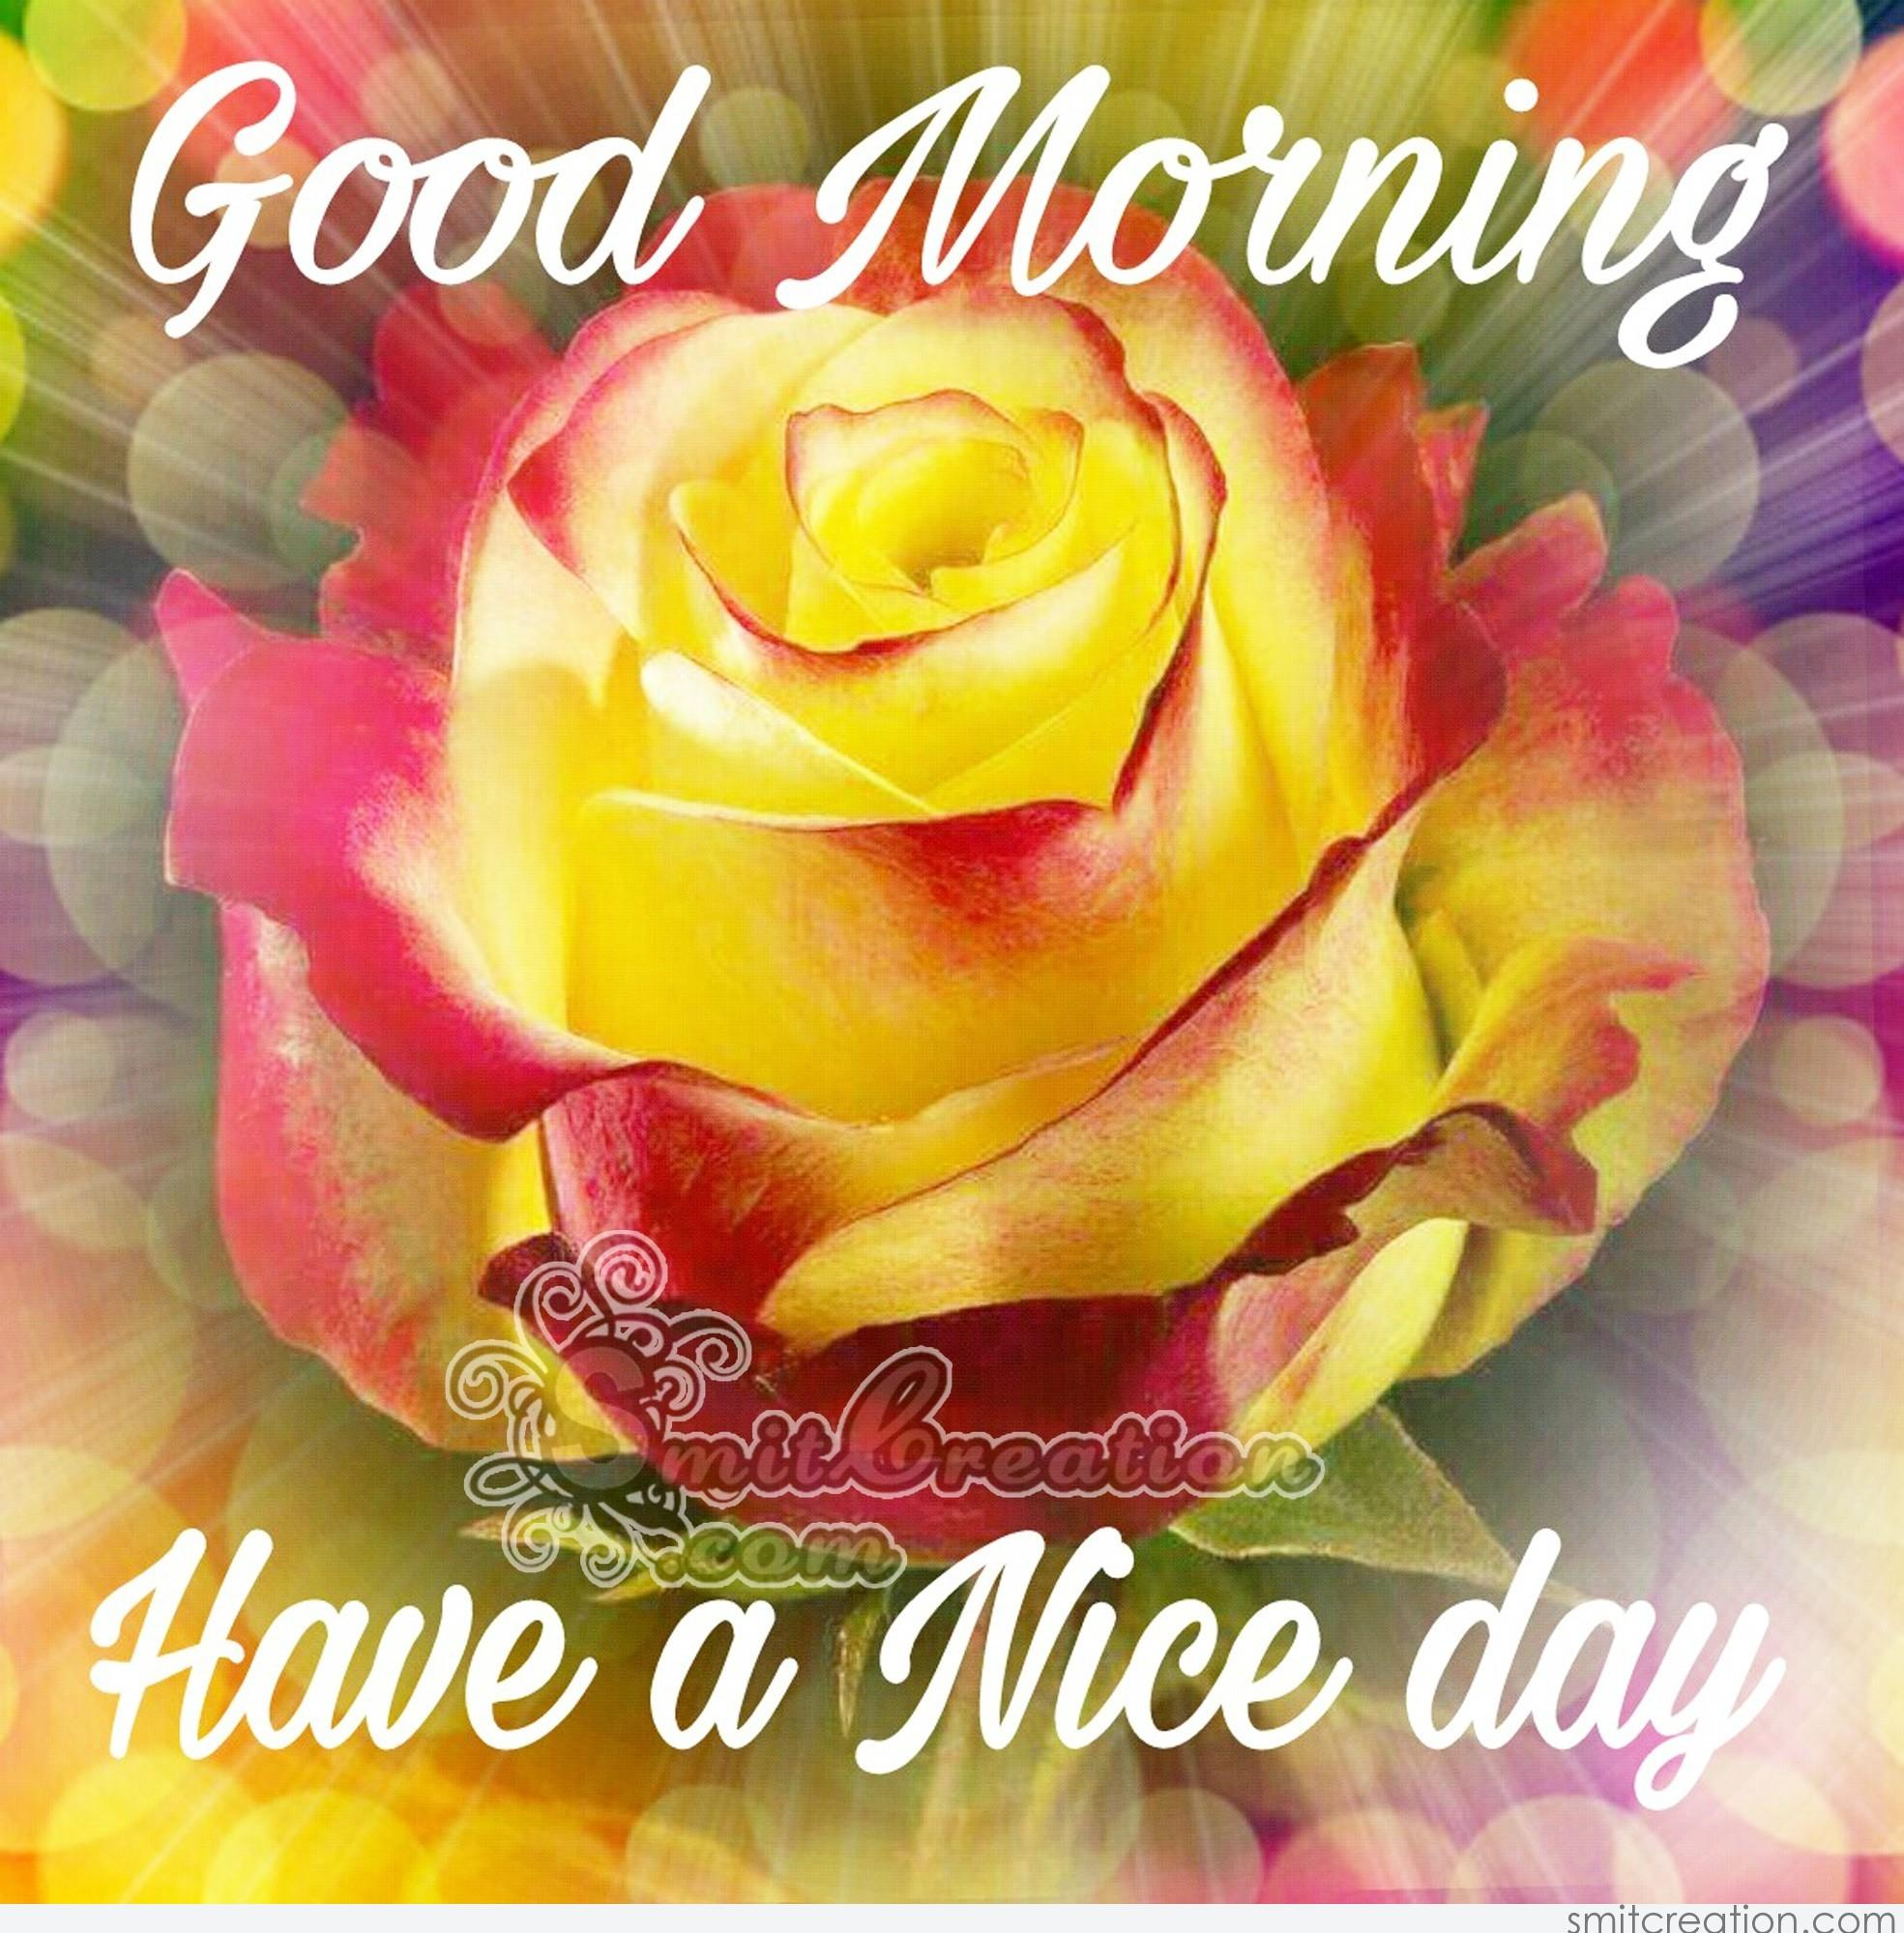 Good Morning Sunday Flowers Images : Good morning flowers pictures and graphics smitcreation